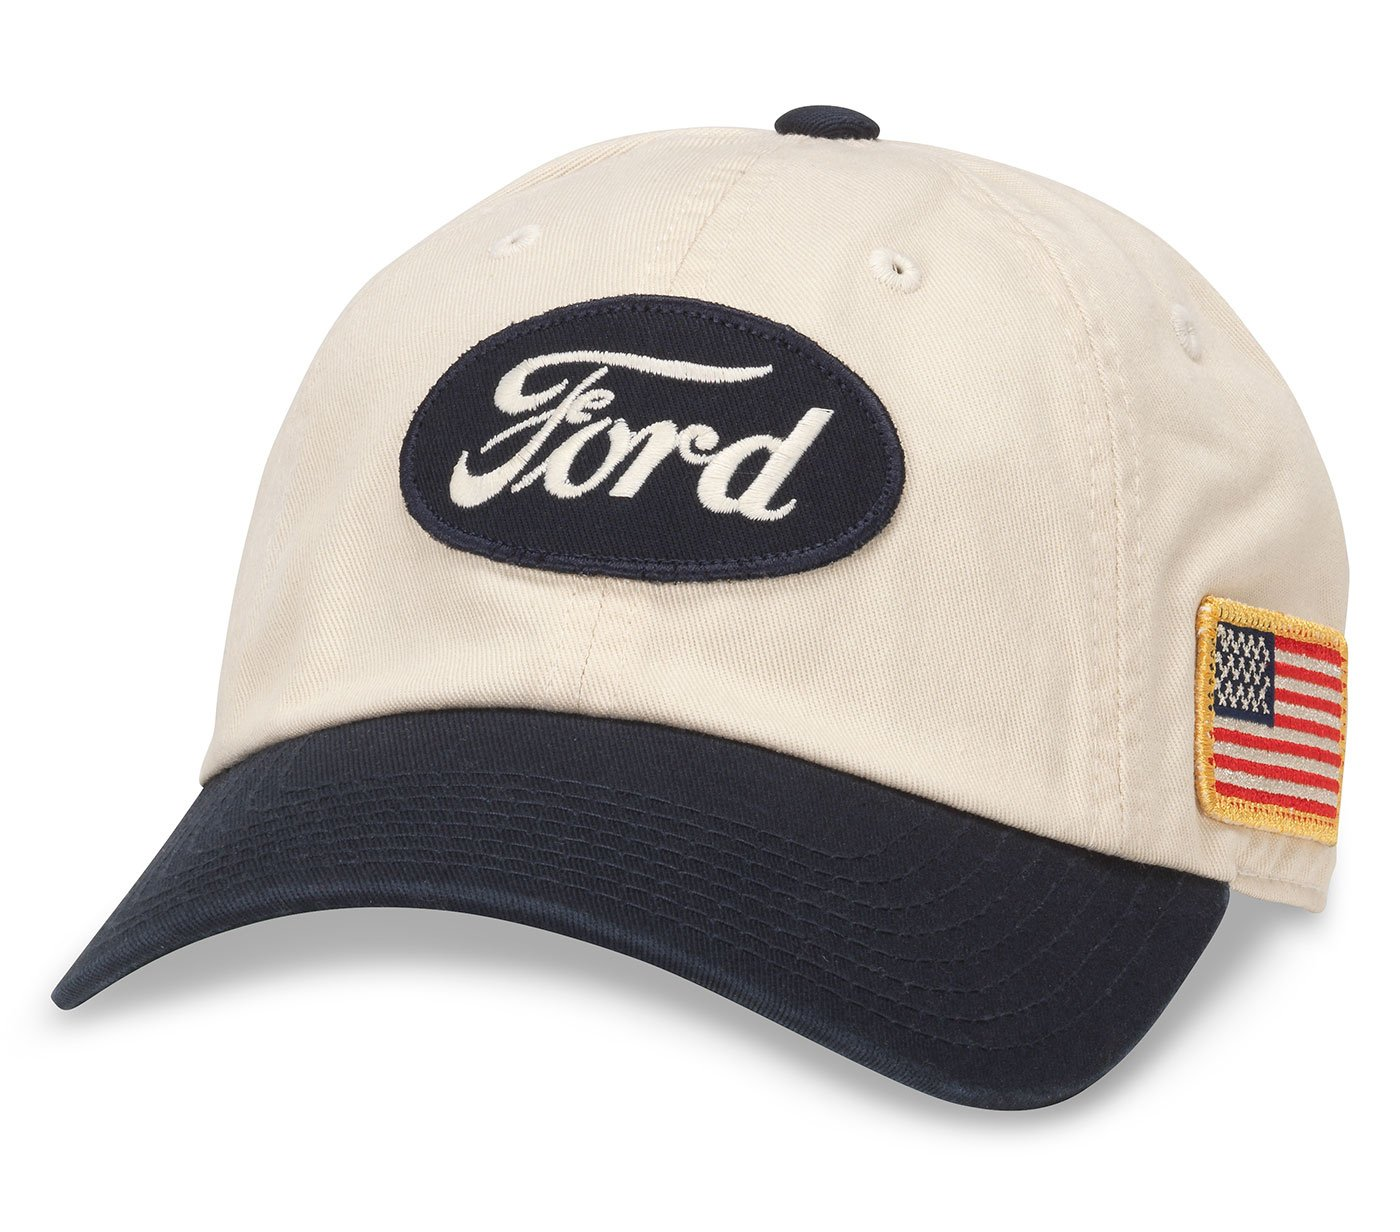 American Needle United Slouch Curved Brim Patch Baseball Hat, Ford, Ivory White/Navy Blue